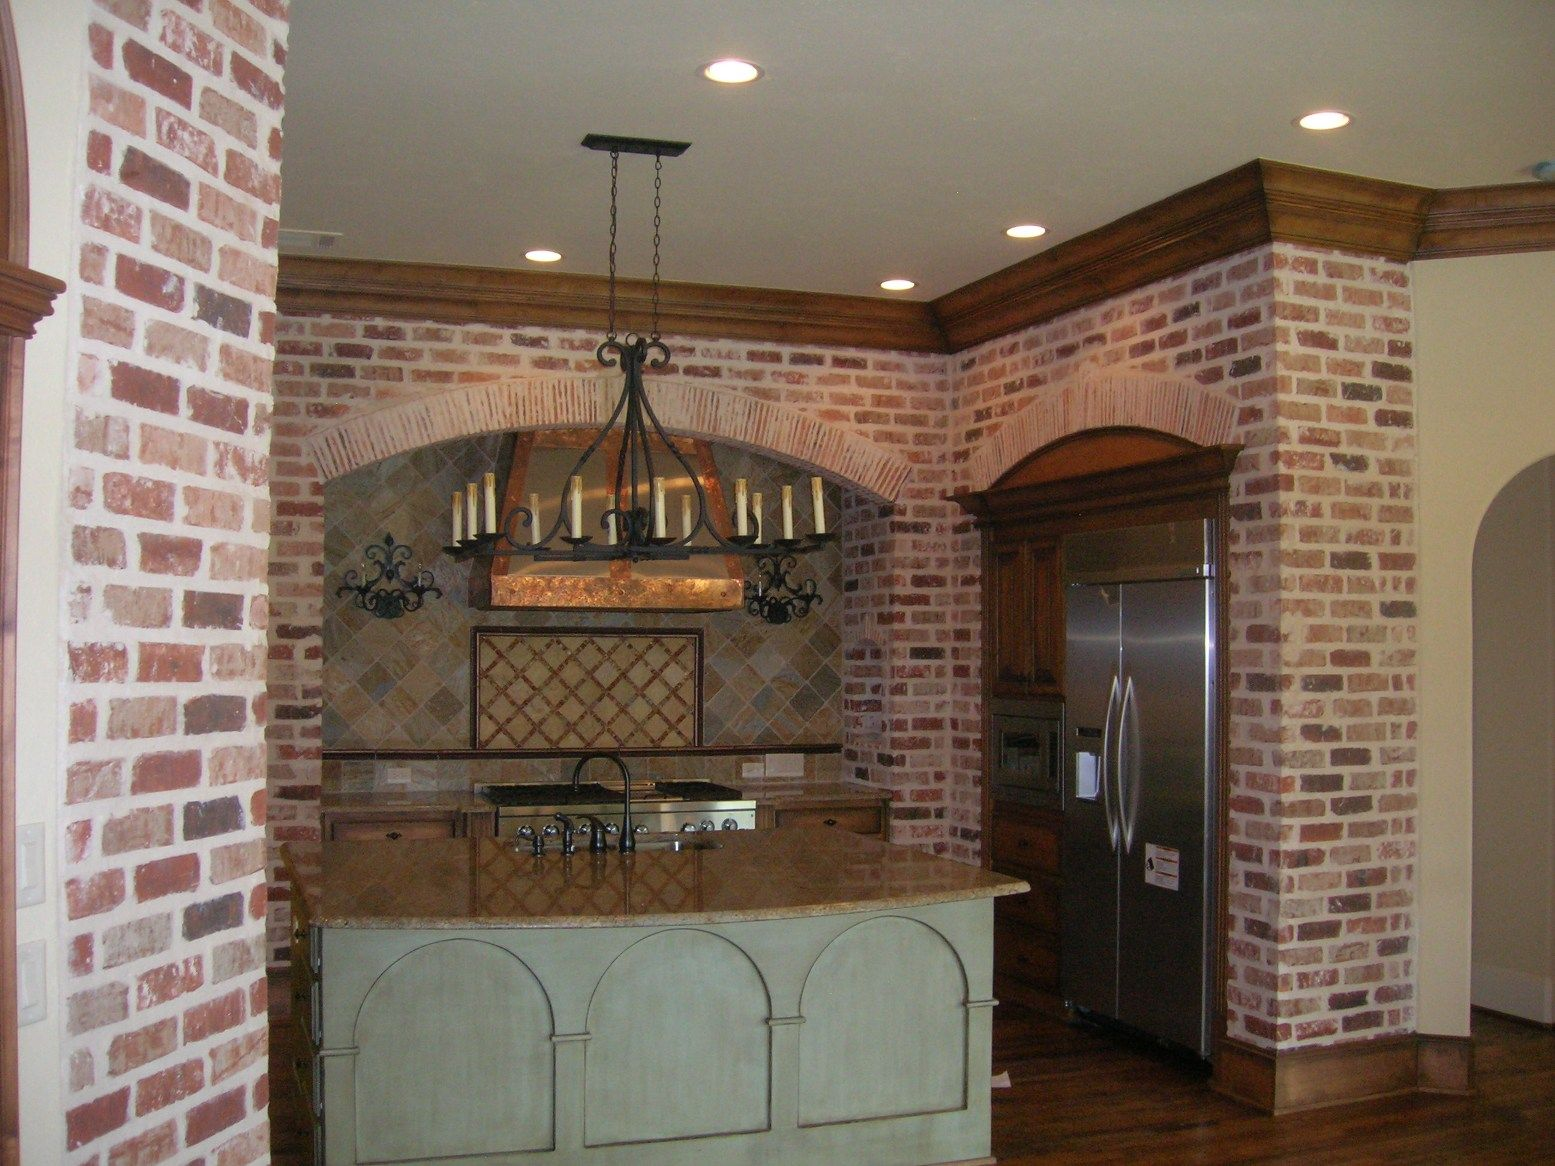 Brick kitchen google search for the home pinterest for Kitchen bricks design